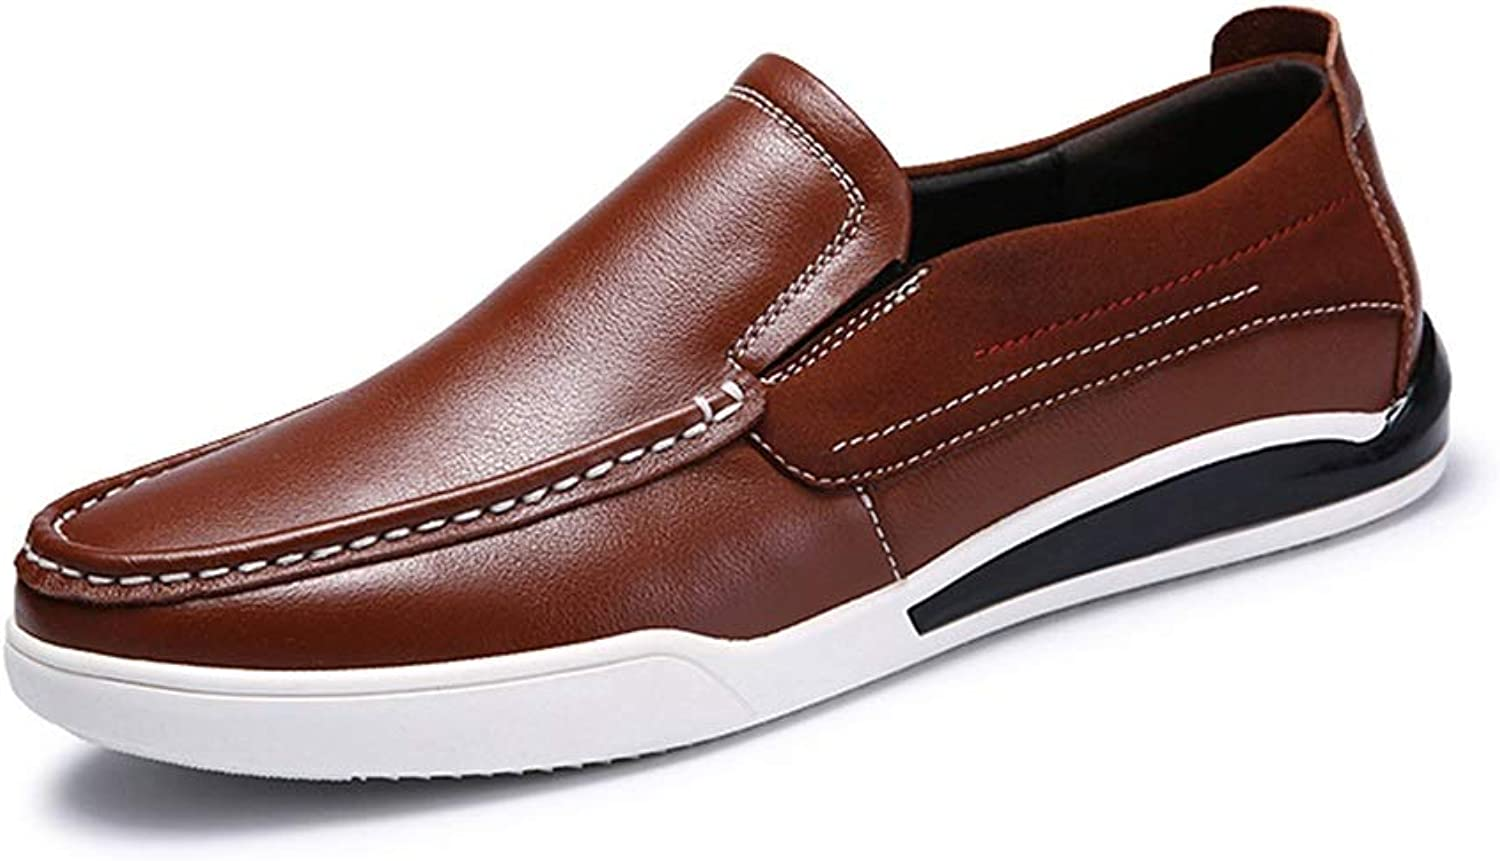 Easy Go Shopping Oxford shoes for Men Formal Business shoes Slip On Style OX Leather Simple Pure color Fashion British Style Round Toe Cricket shoes (color   Brown, Size   7.5 UK)